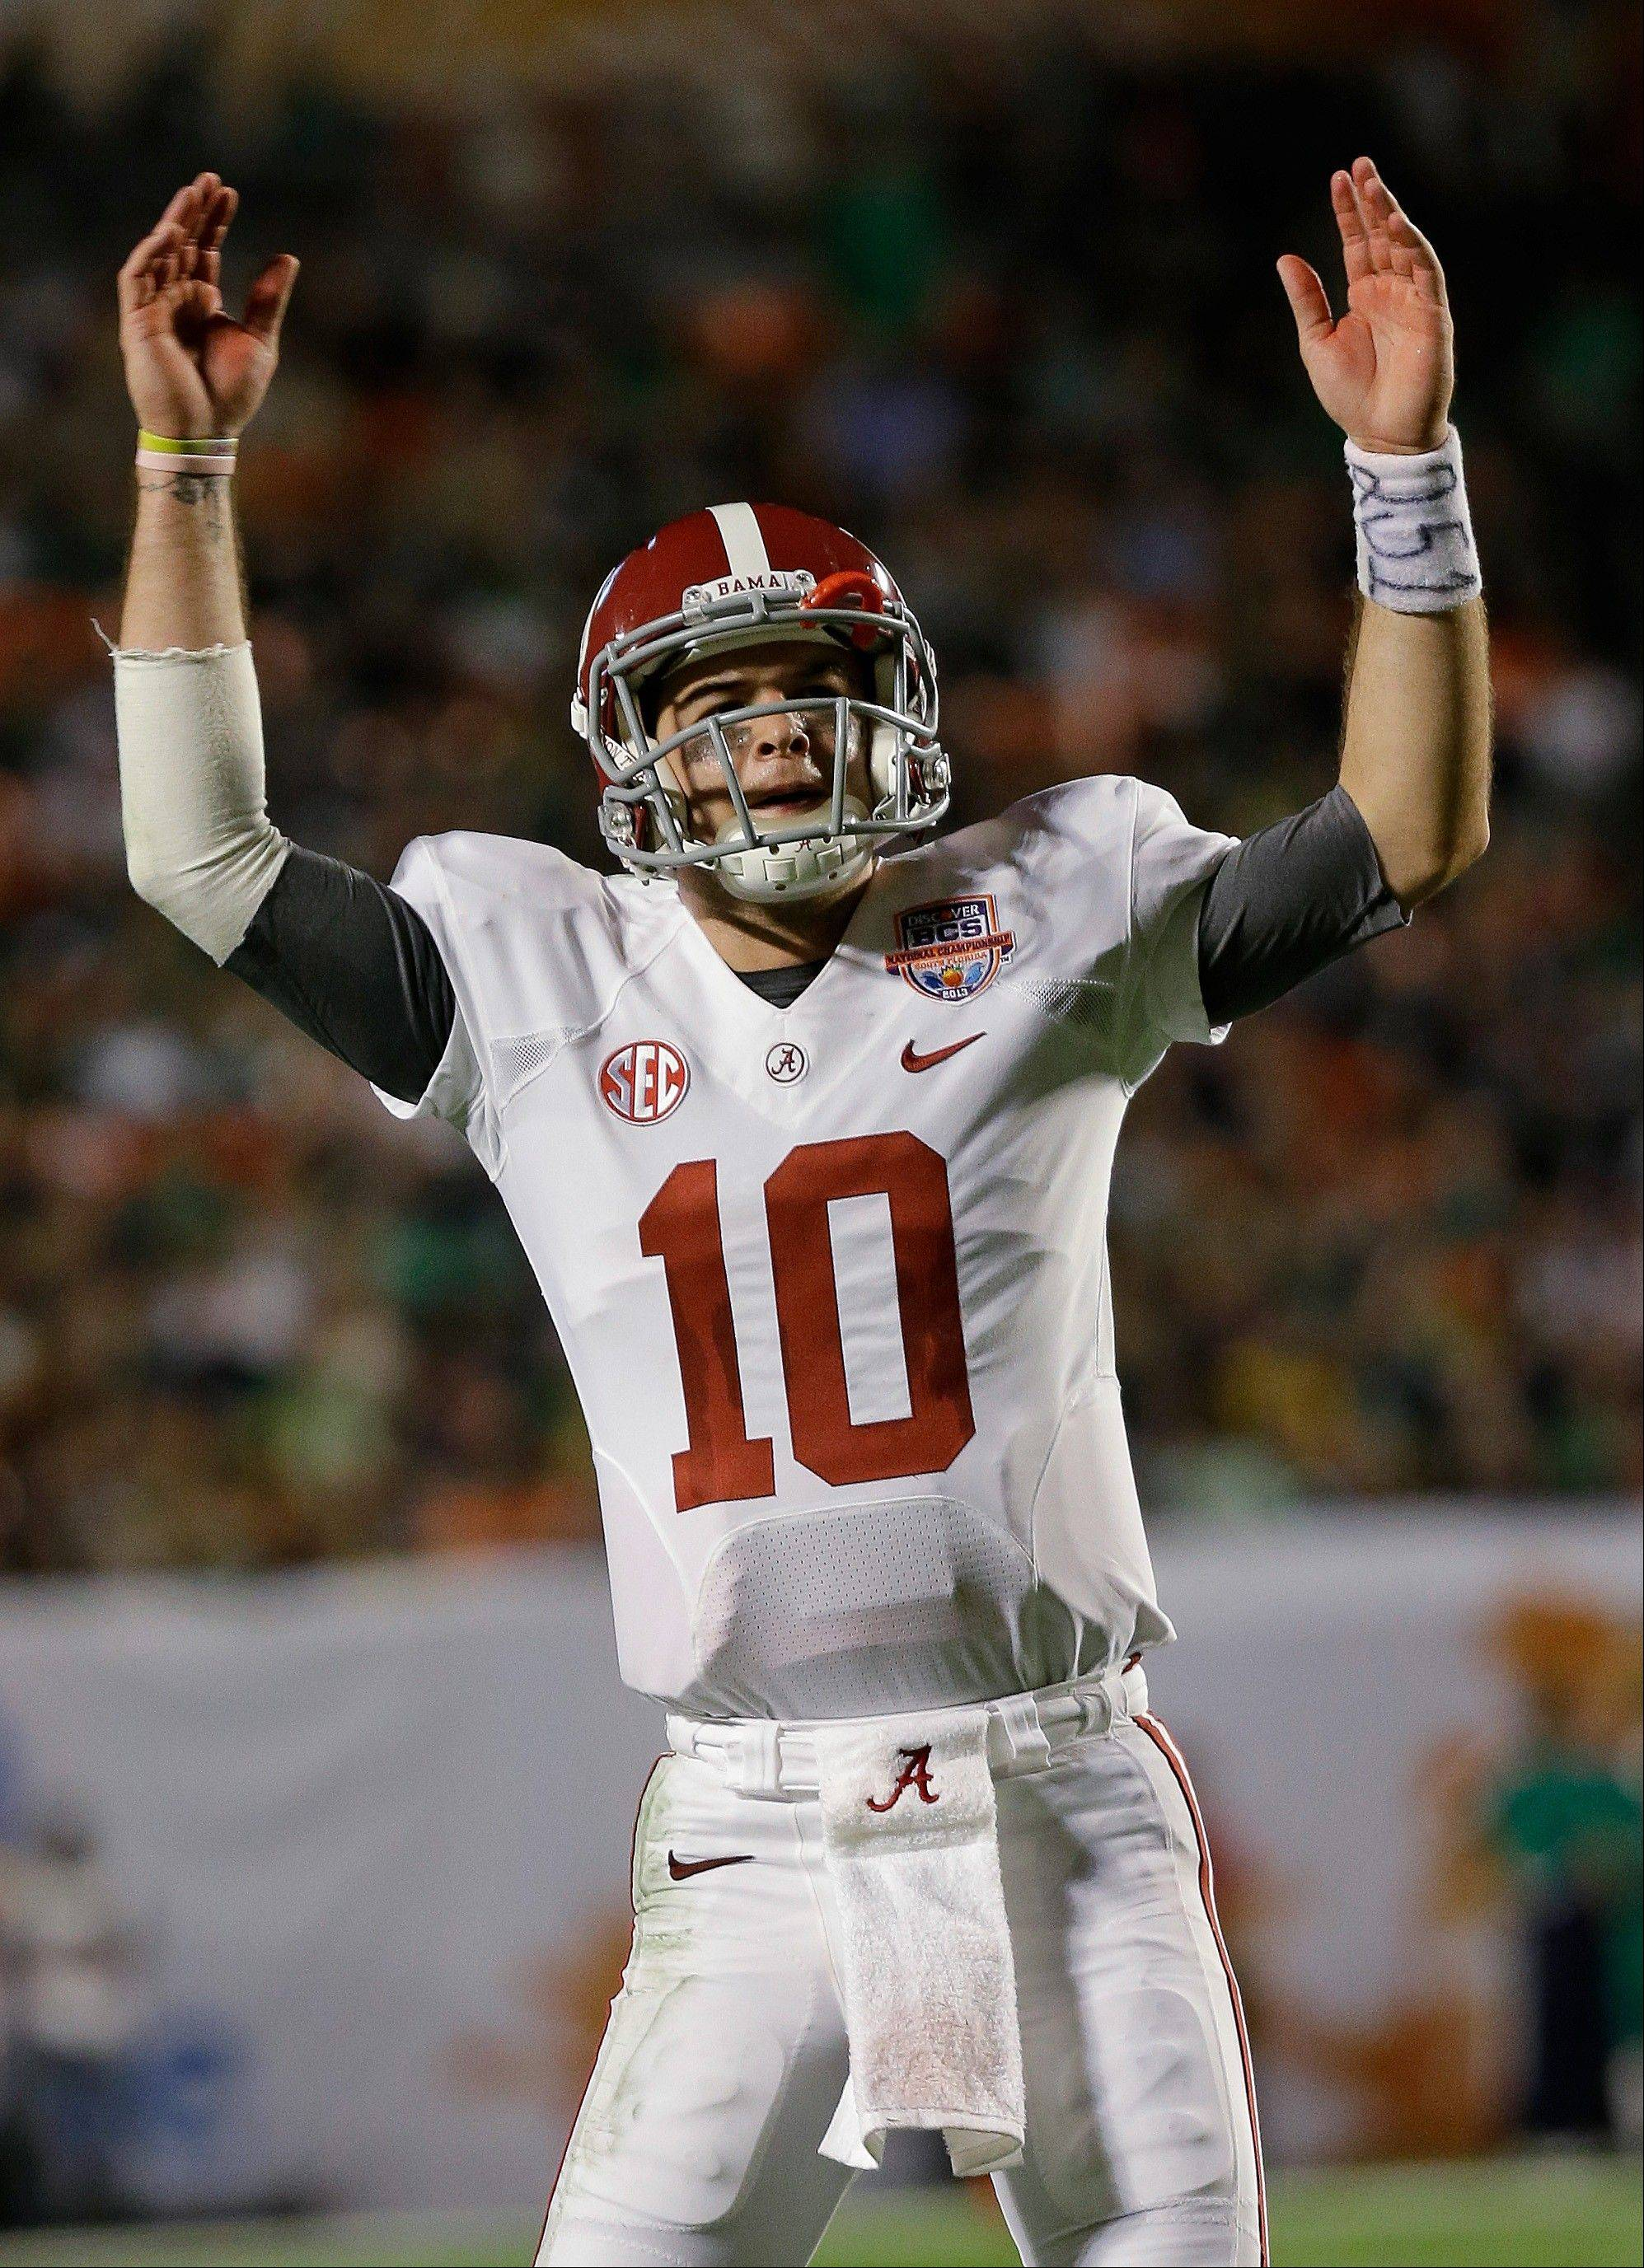 Alabama quarterback AJ McCarron celebrates during the second half of the BCS National Championship college football game against Notre Dame Monday, Jan. 7, 2013, in Miami.